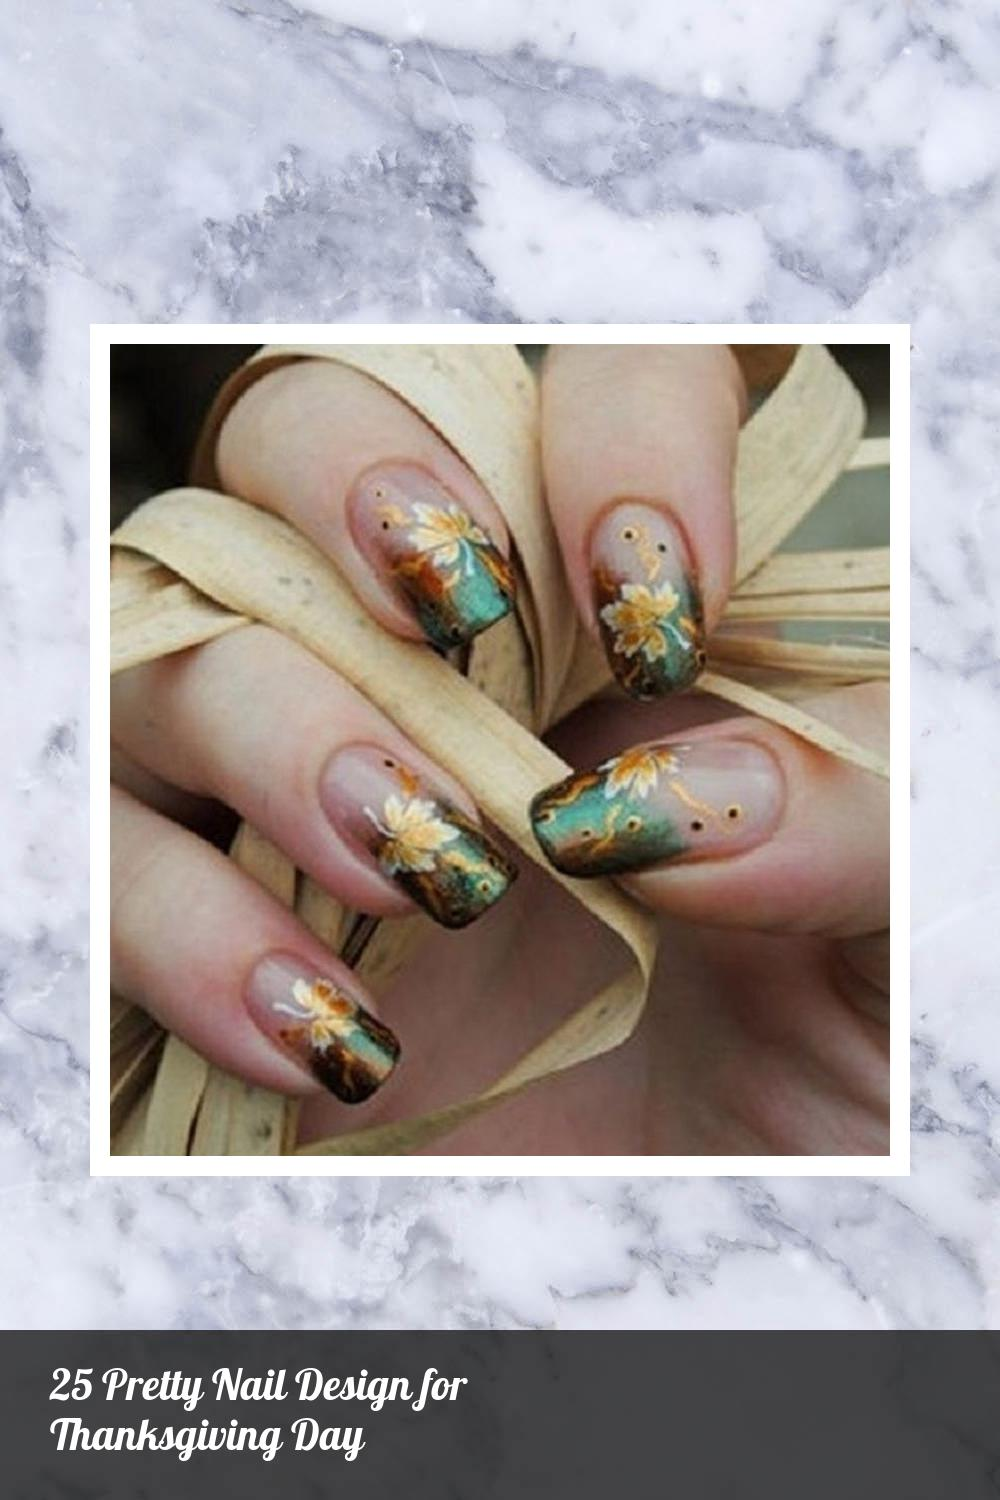 25 Pretty Nail Design for Thanksgiving Day 21